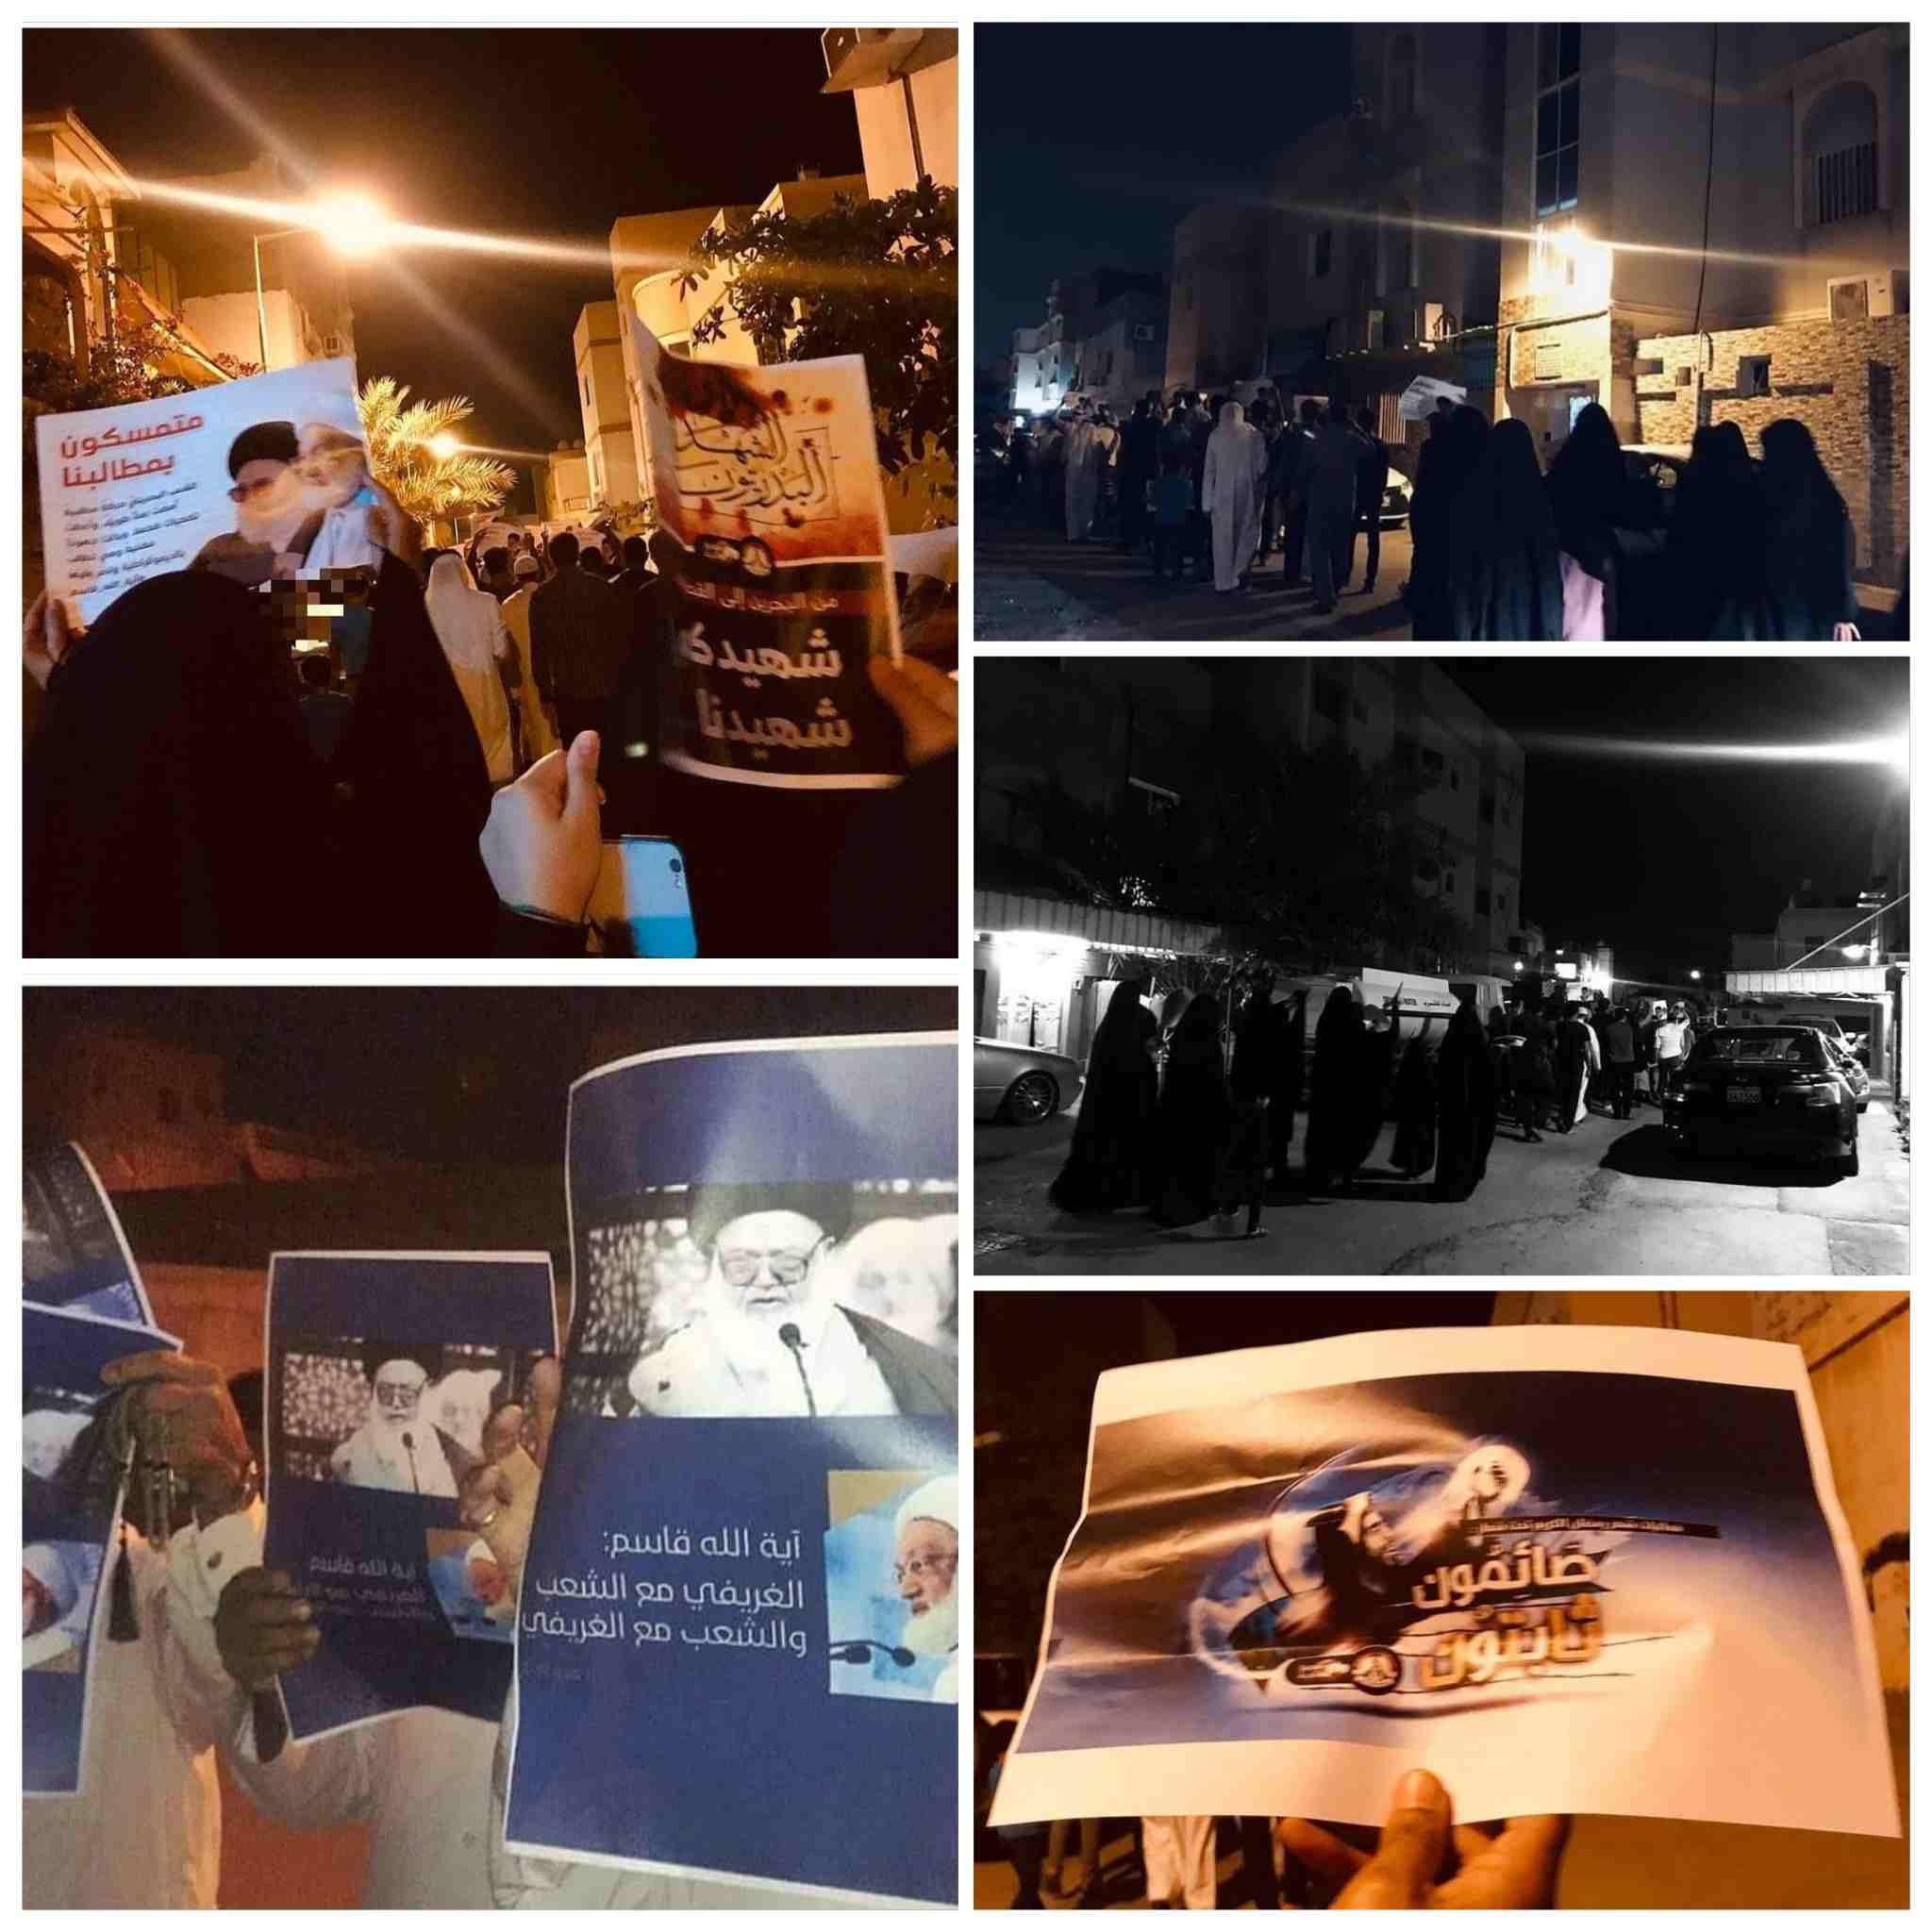 Bahrain's towns witness revolutionary activities in solidarity with Badreen martyrs